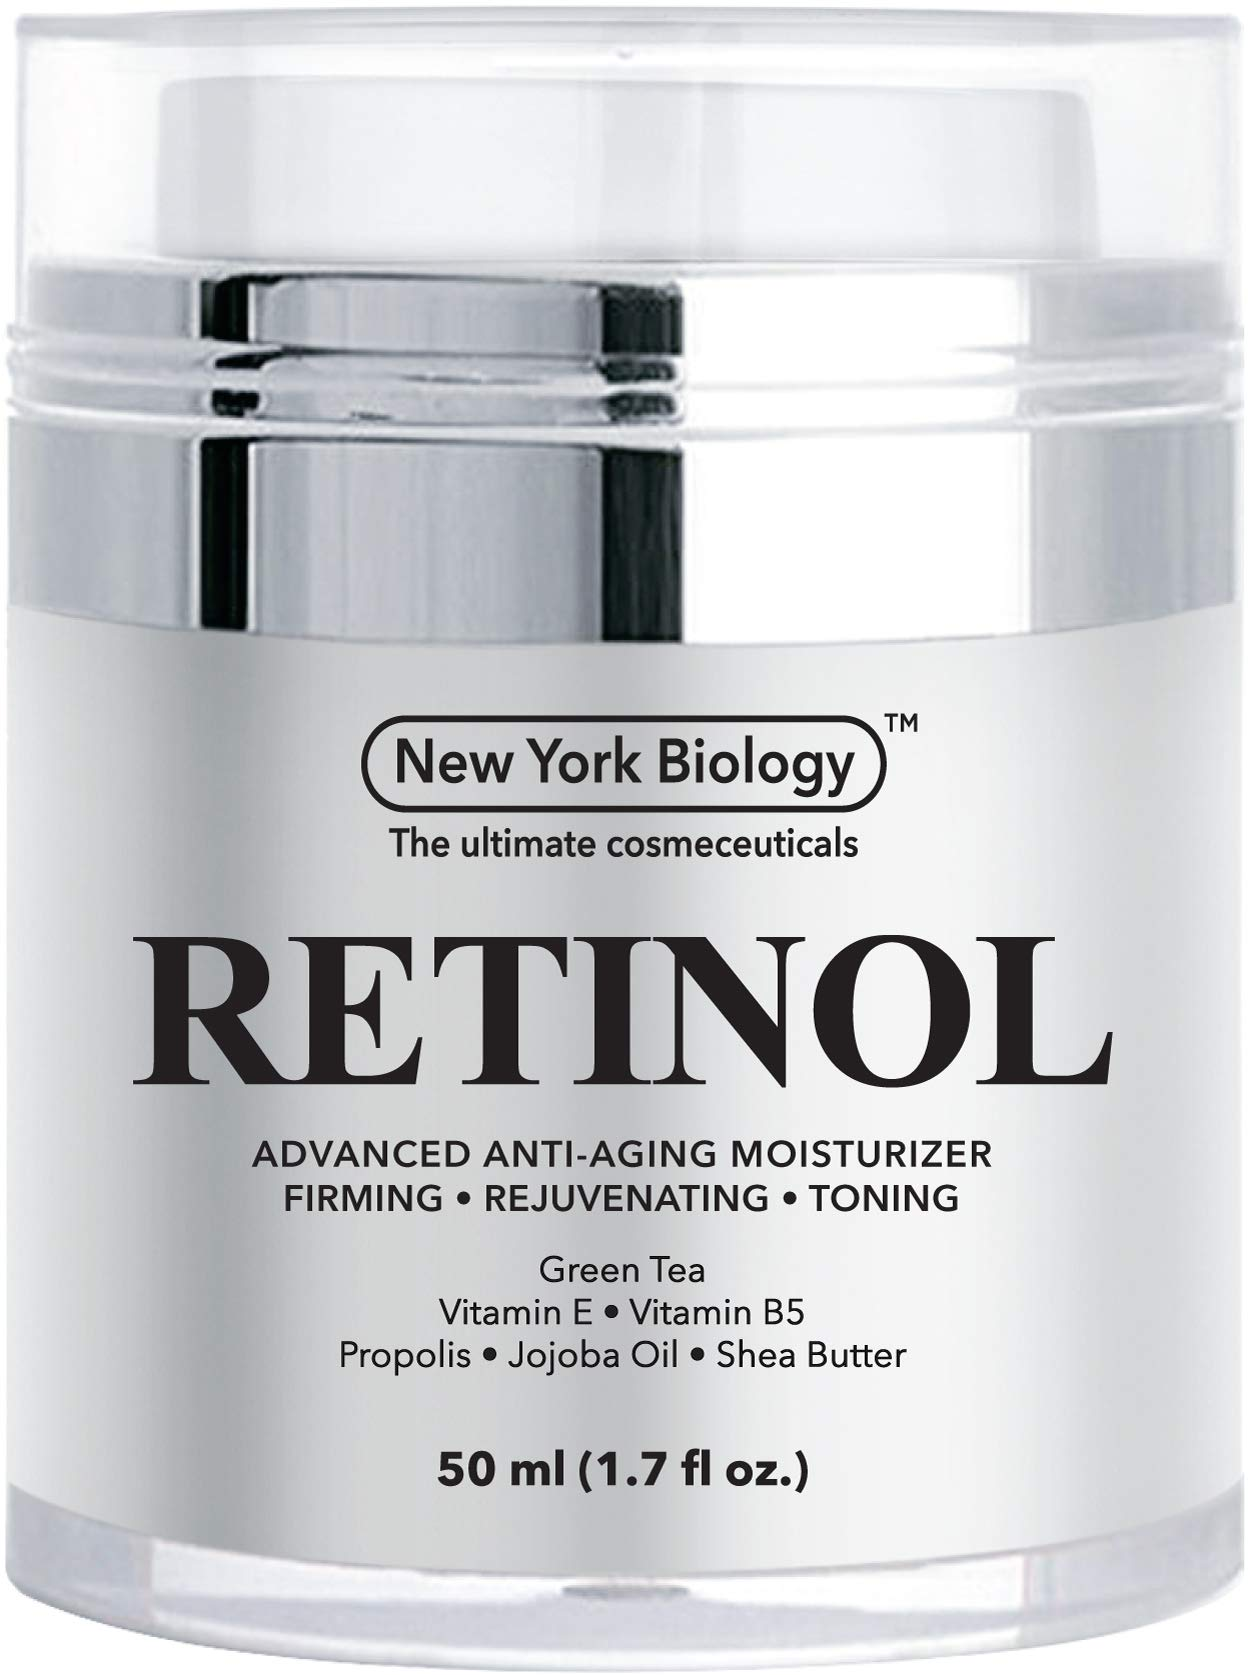 New York Biology Retinol Cream Moisturizer for Face and Eye Area - Anti Aging Infused with Vitamin A and E for Fine Lines and Wrinkles - 1.7 oz by New York Biology